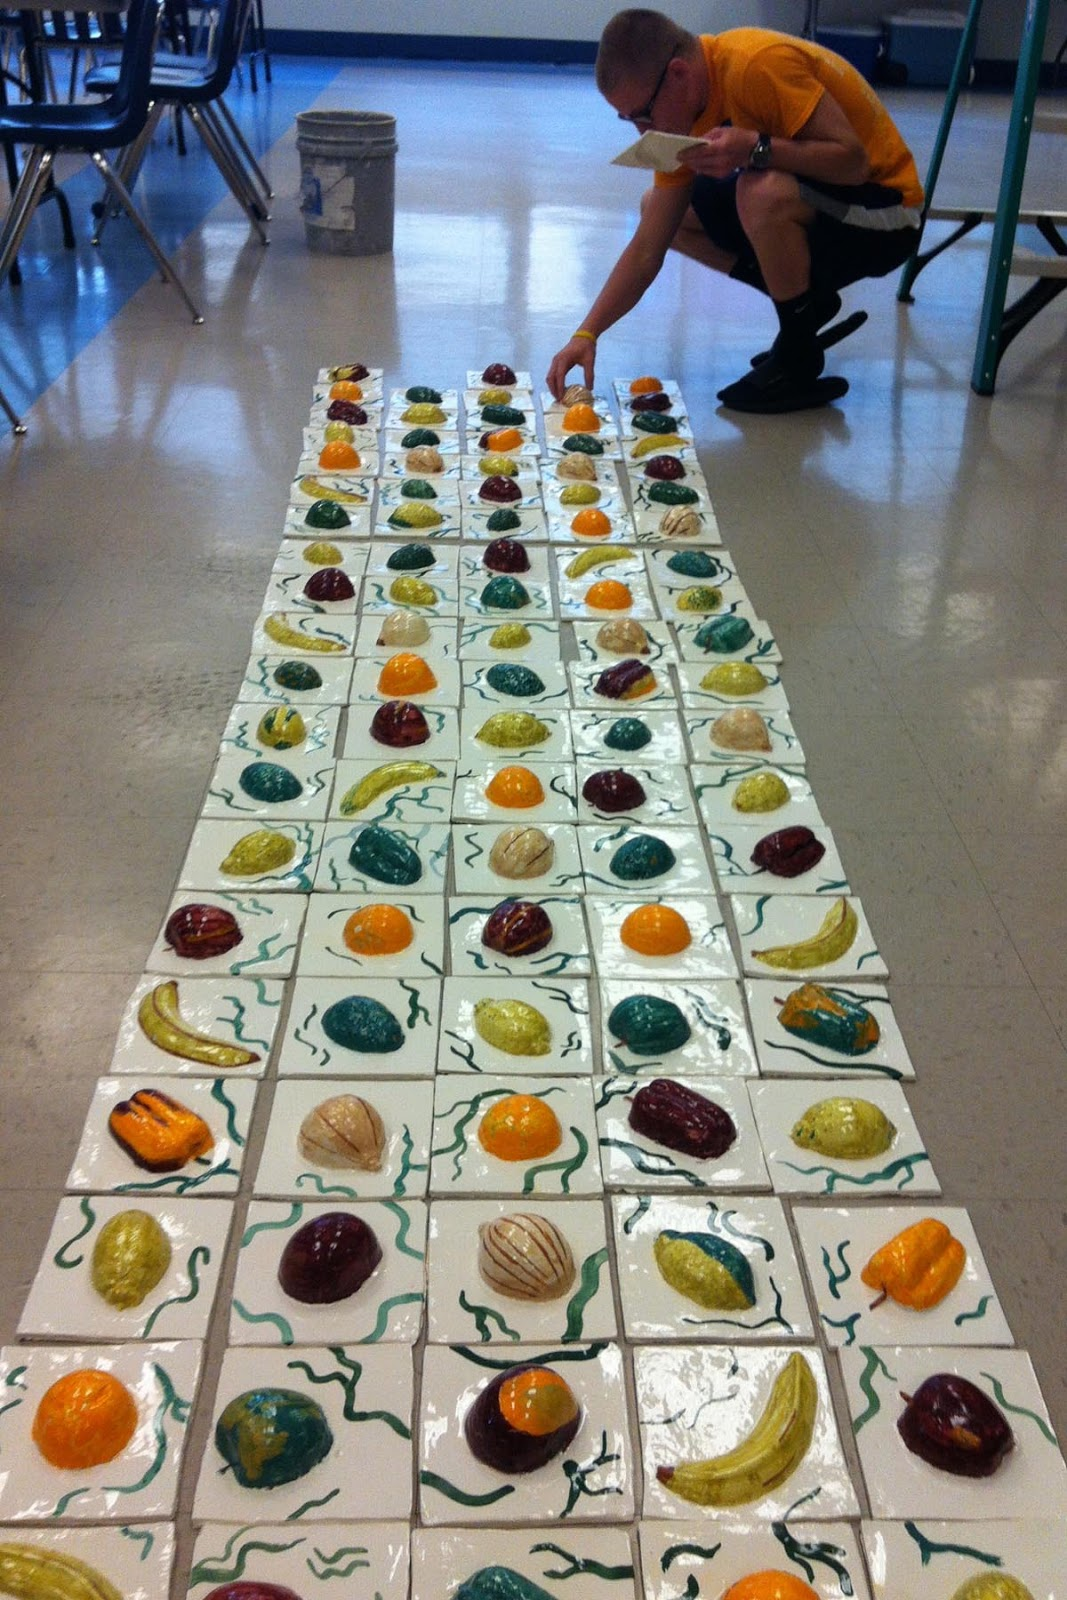 Molded Fruit And Vegetable Tiles Celebrate Healthy Eating